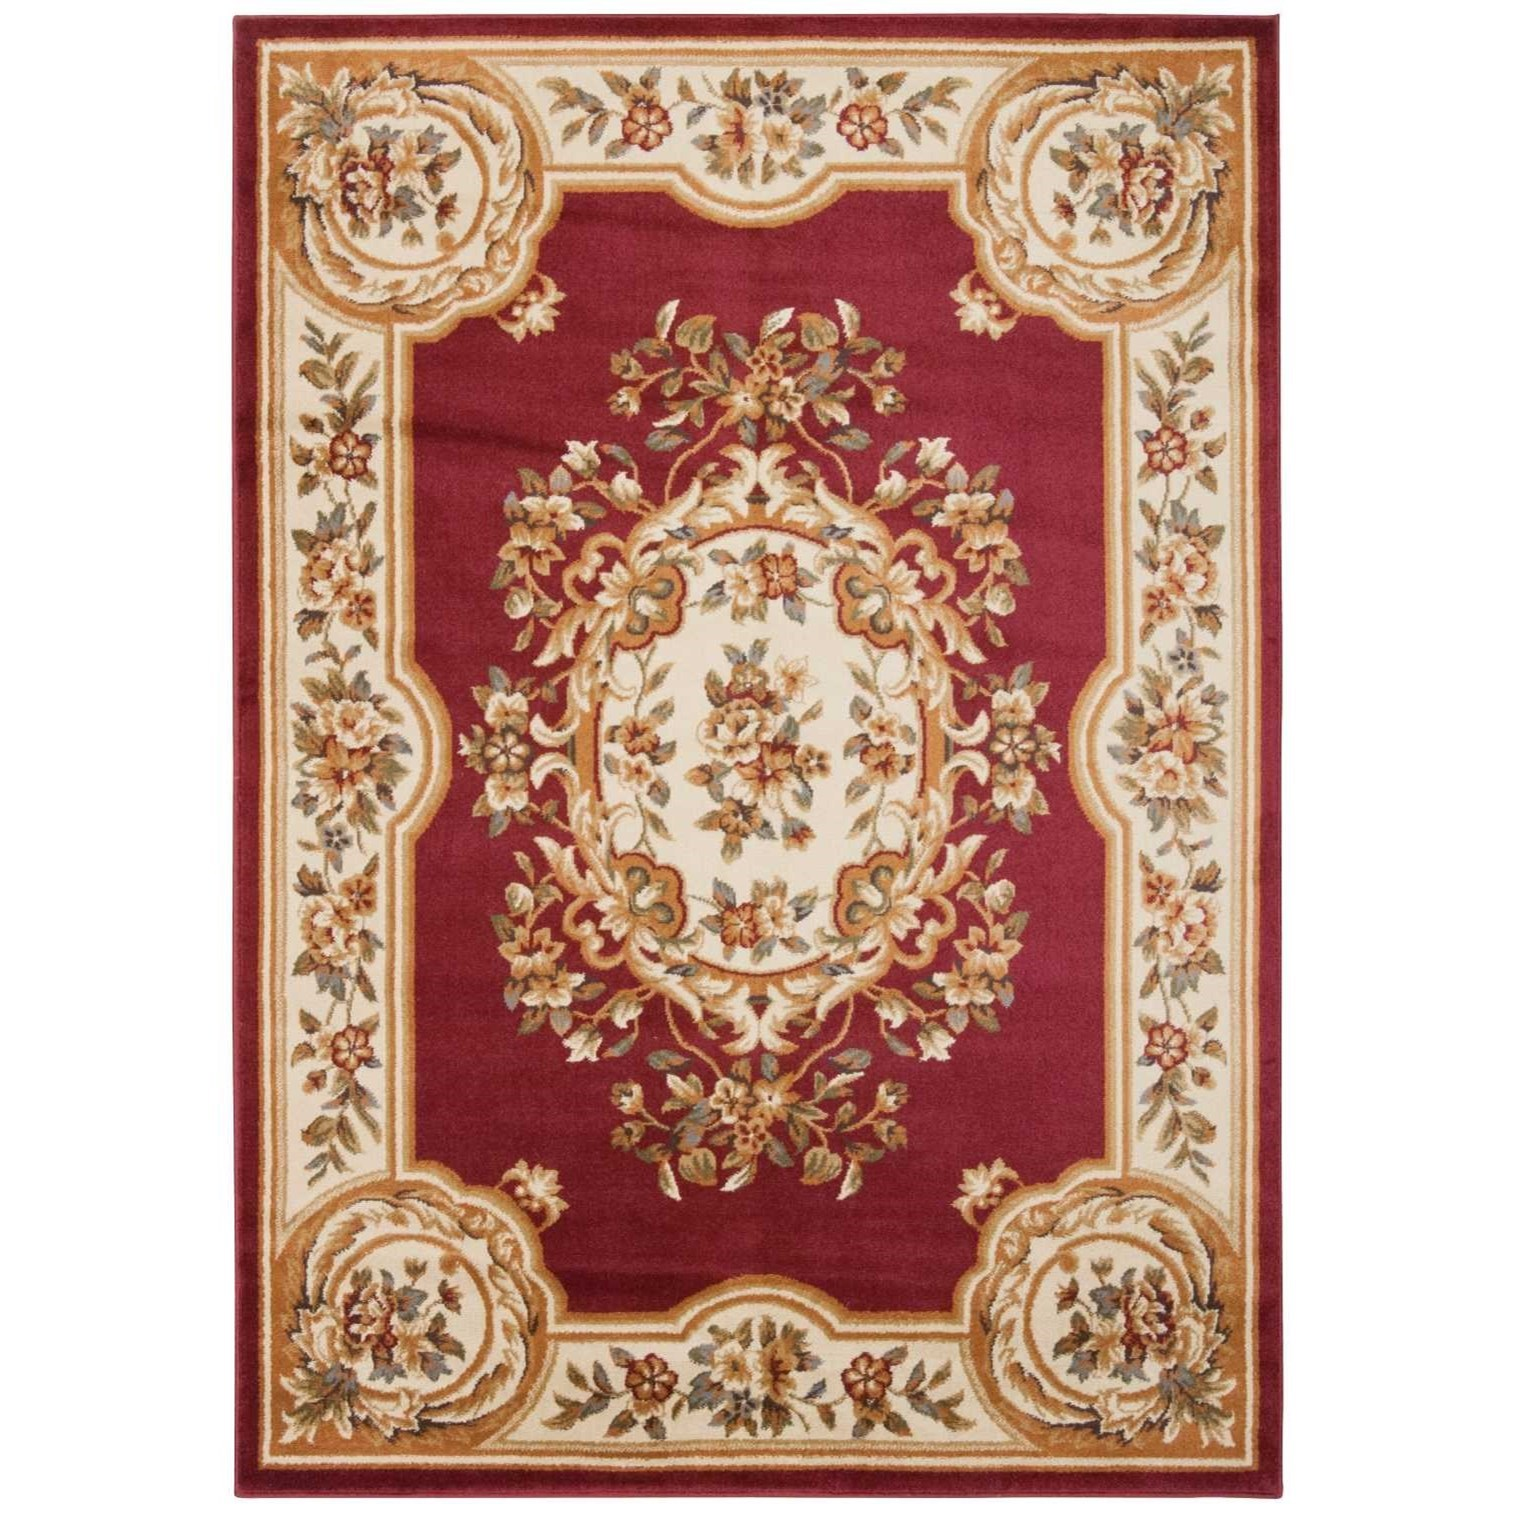 "3'11"" x 5'10"" Red Rectangle Rug"